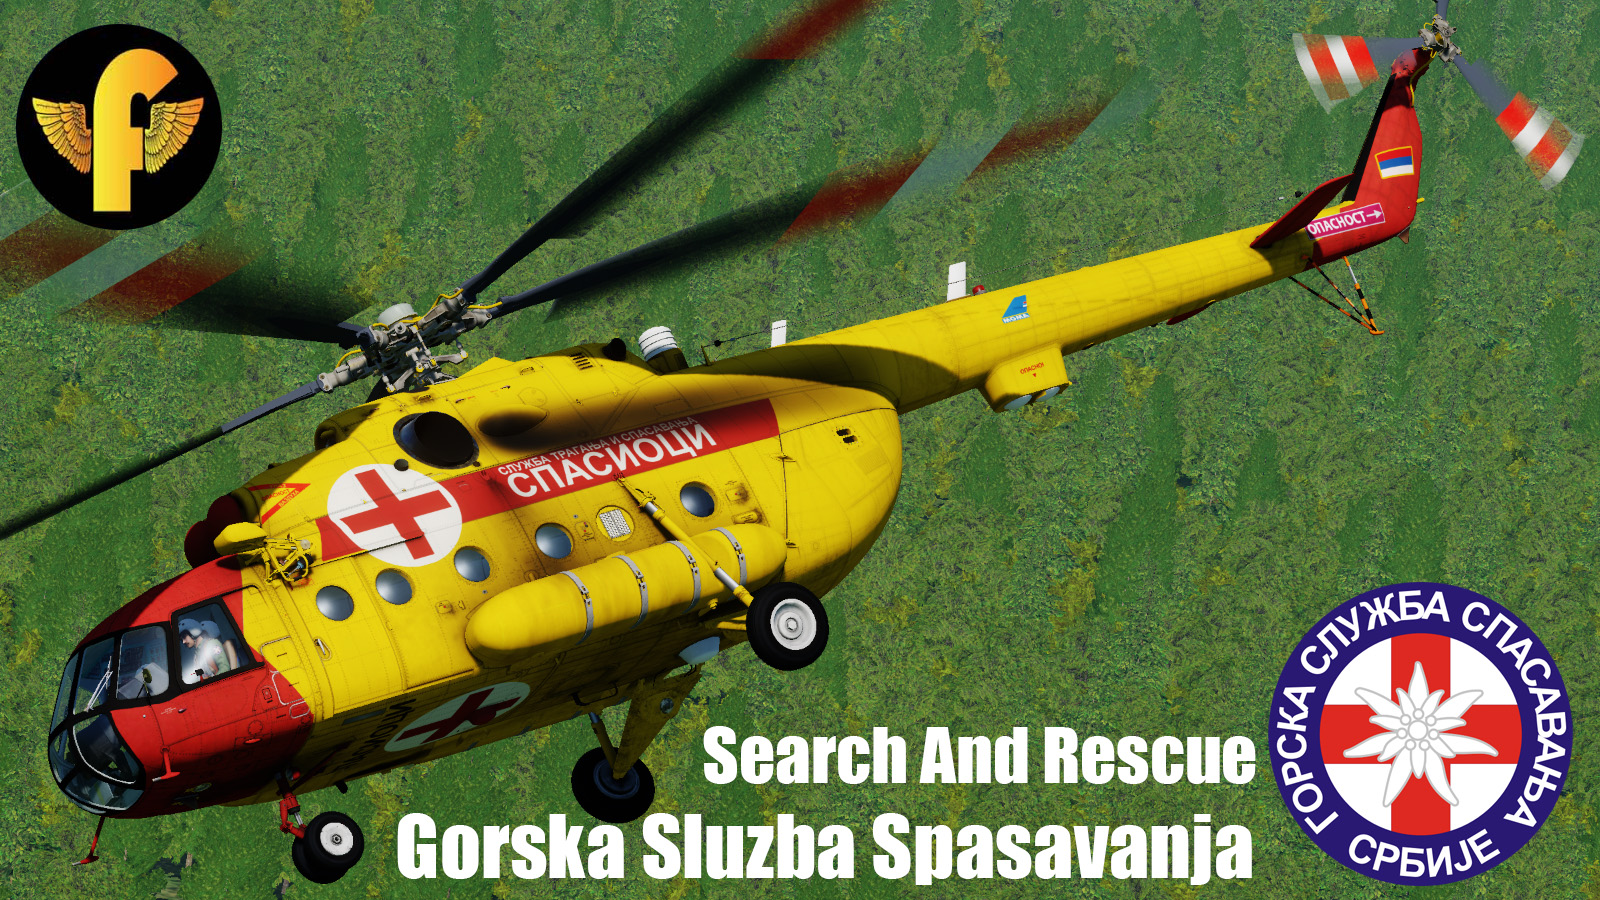 Search And Rescue / Gorska Sluzba Spasavanja Serbia Fictional